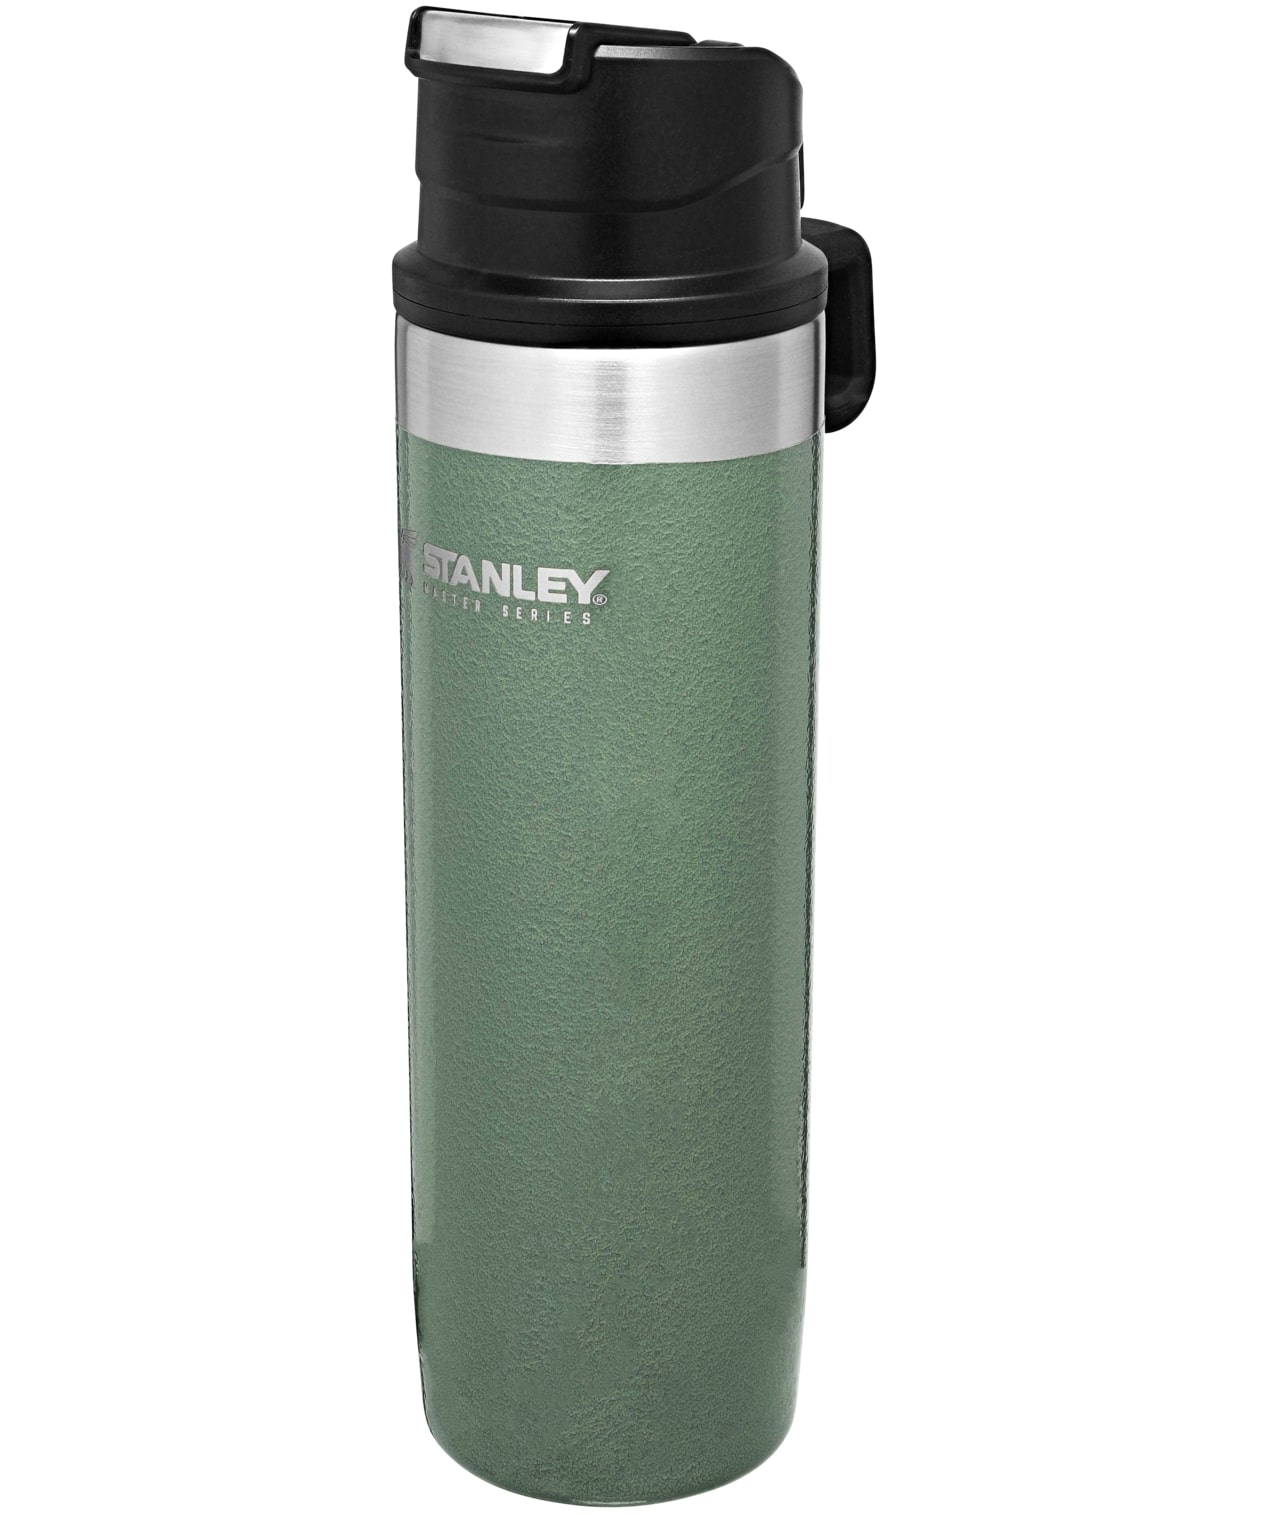 Bình giữ nhiệt Stanley Master Unbreakable Trigger Action Mug 20oz | 590ml – Green